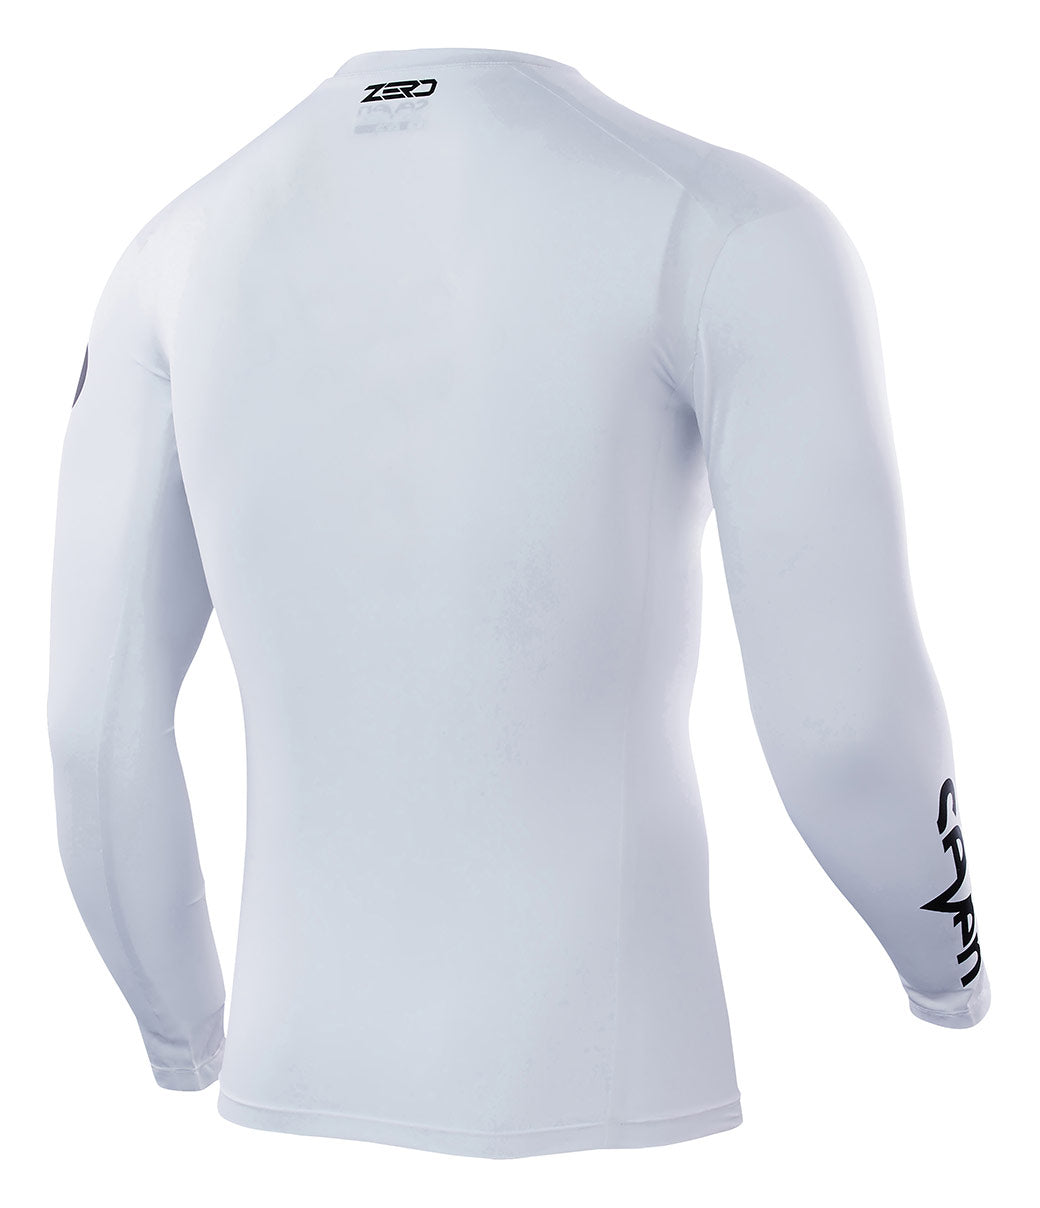 Youth Zero Staple Compression Jersey - White